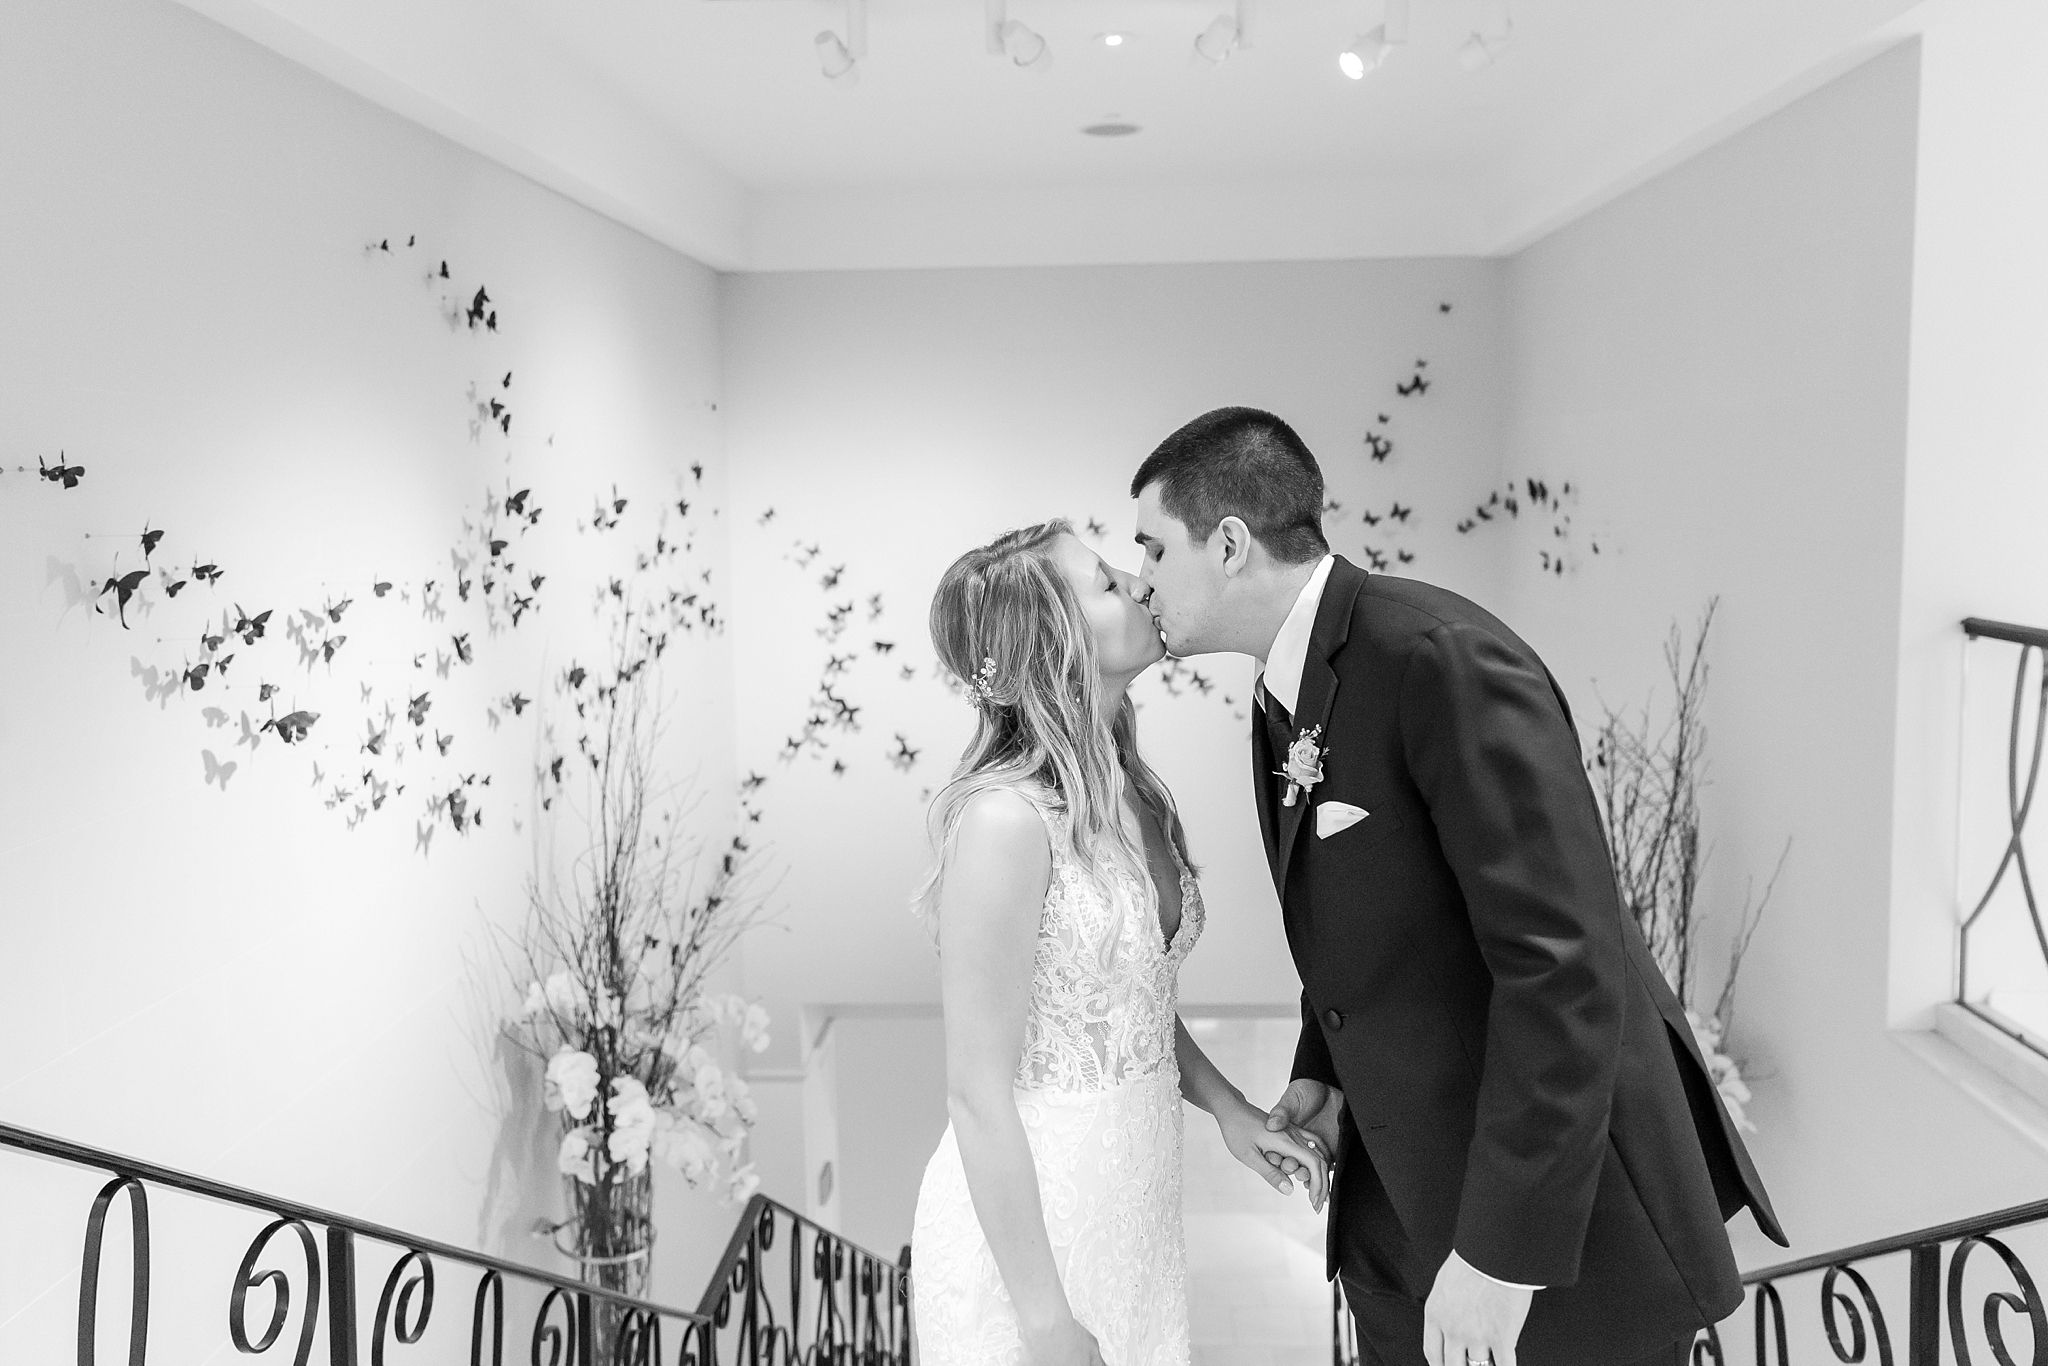 candid-romantic-wedding-photos-at-the-h-hotel-in-midland-michigan-by-courtney-carolyn-photography_0118.jpg